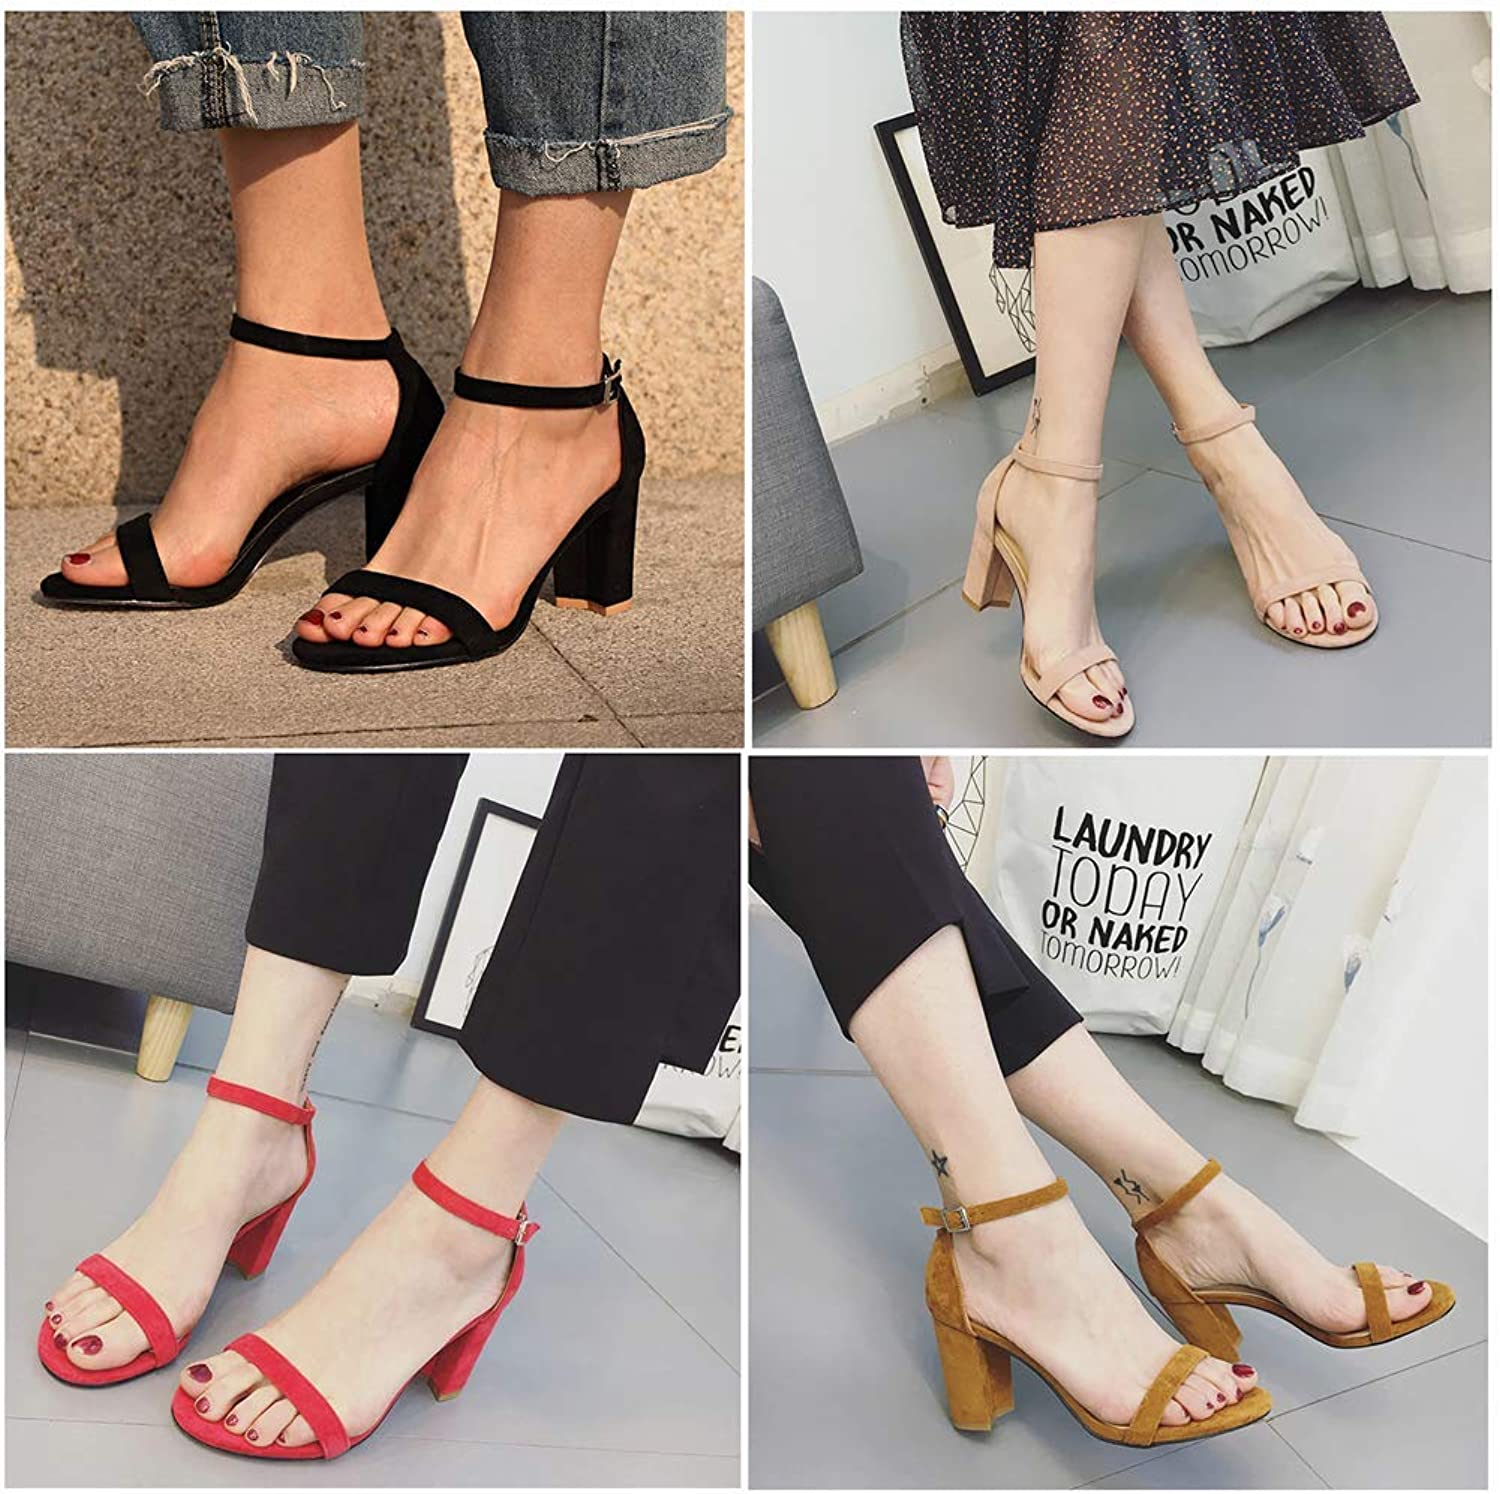 LQT Ltd Chunky Heel Women Ankle Strap Gladiator Sandals Women's Summer shoes Fashion Female Sandilas Cover Heel Flock Party shoes